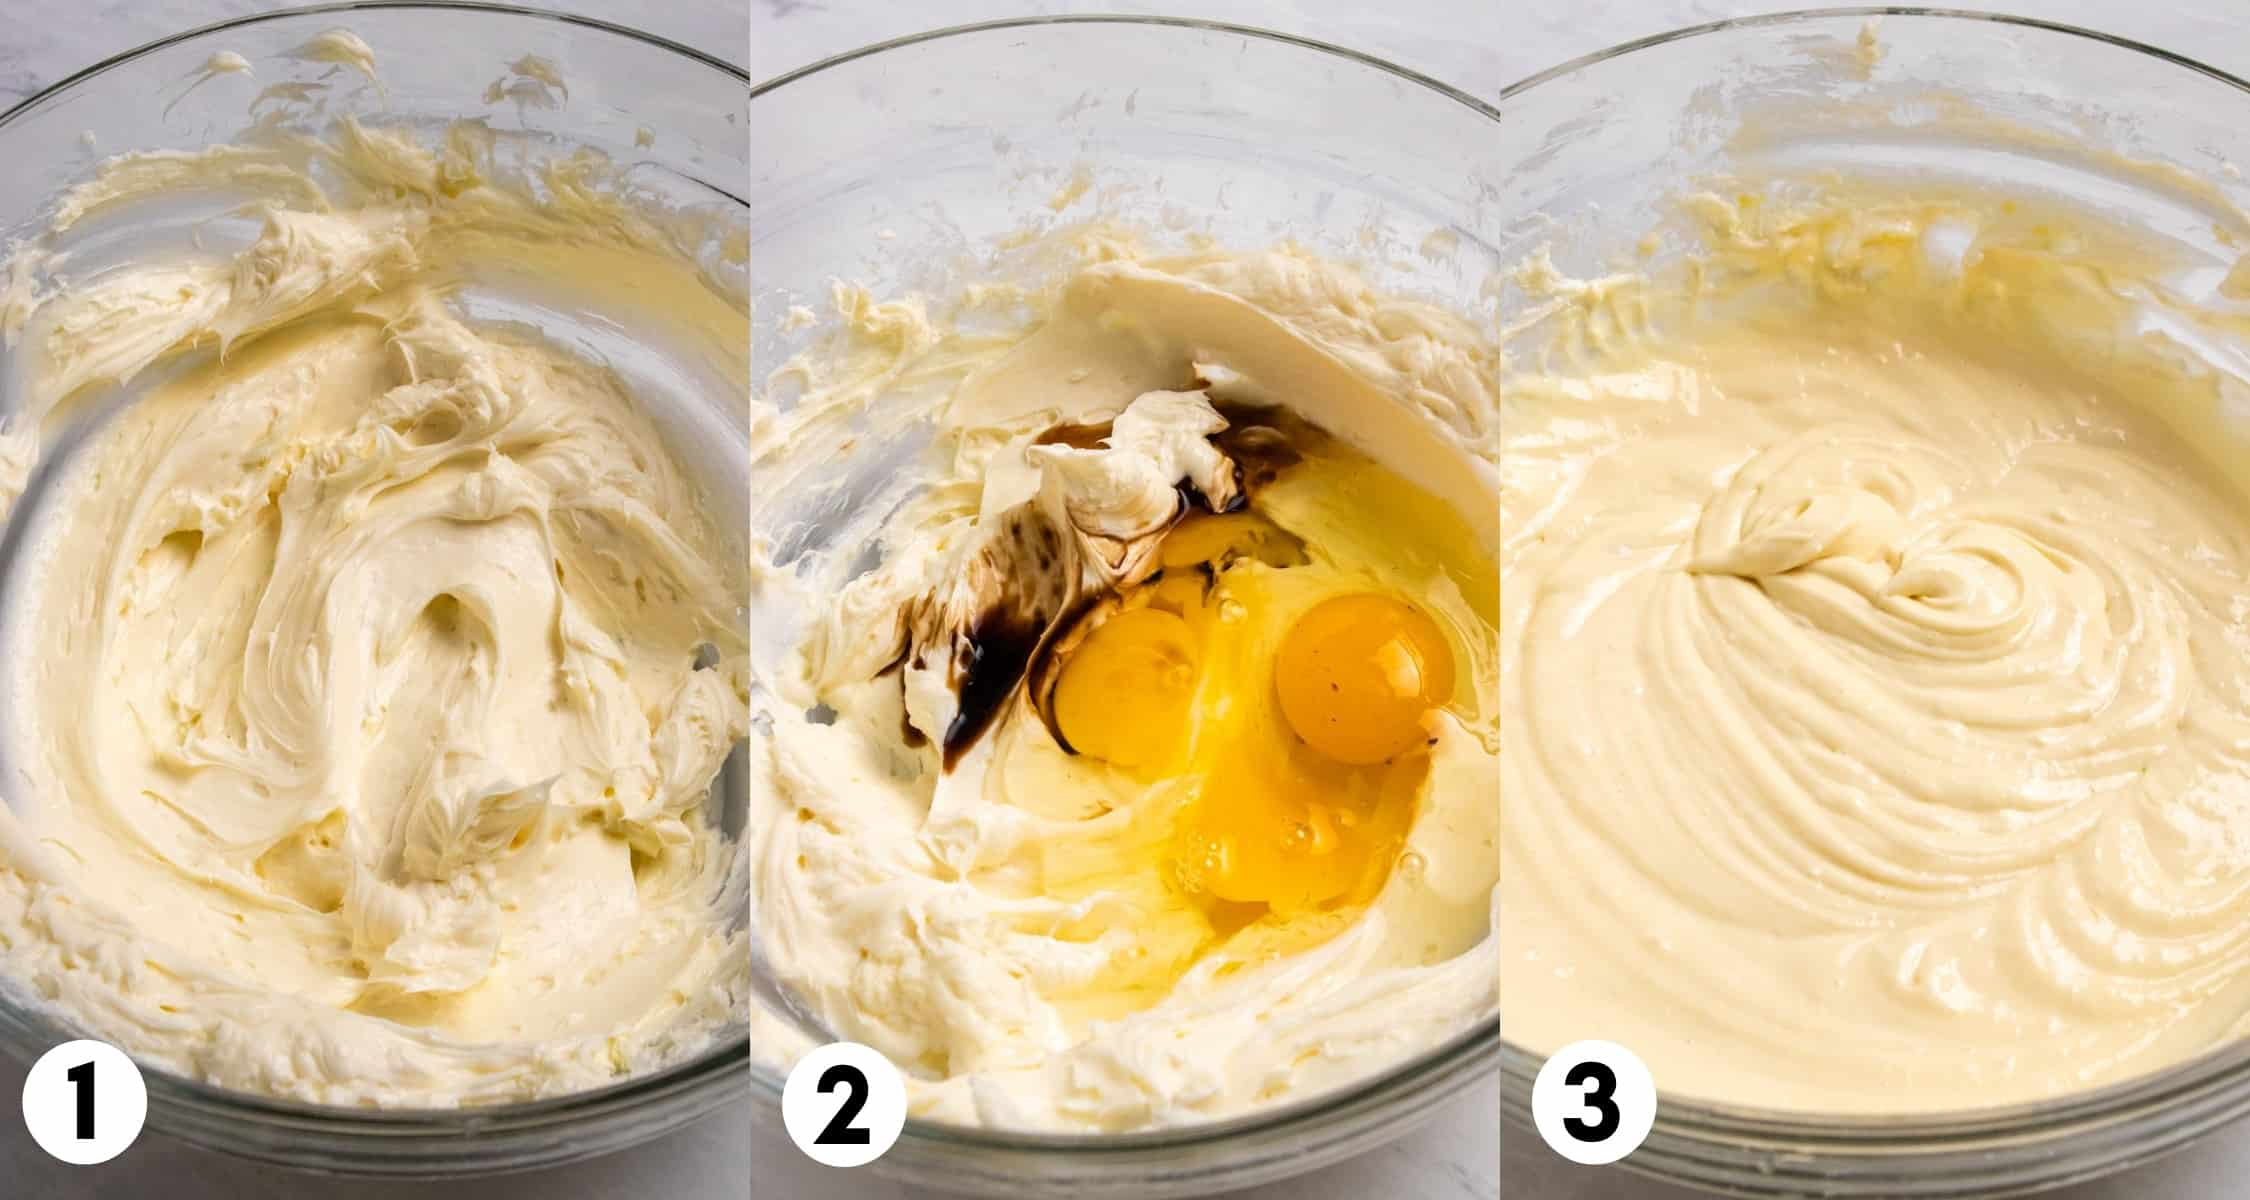 Cream cheese and other cheesecake ingredients in mixing bowl.